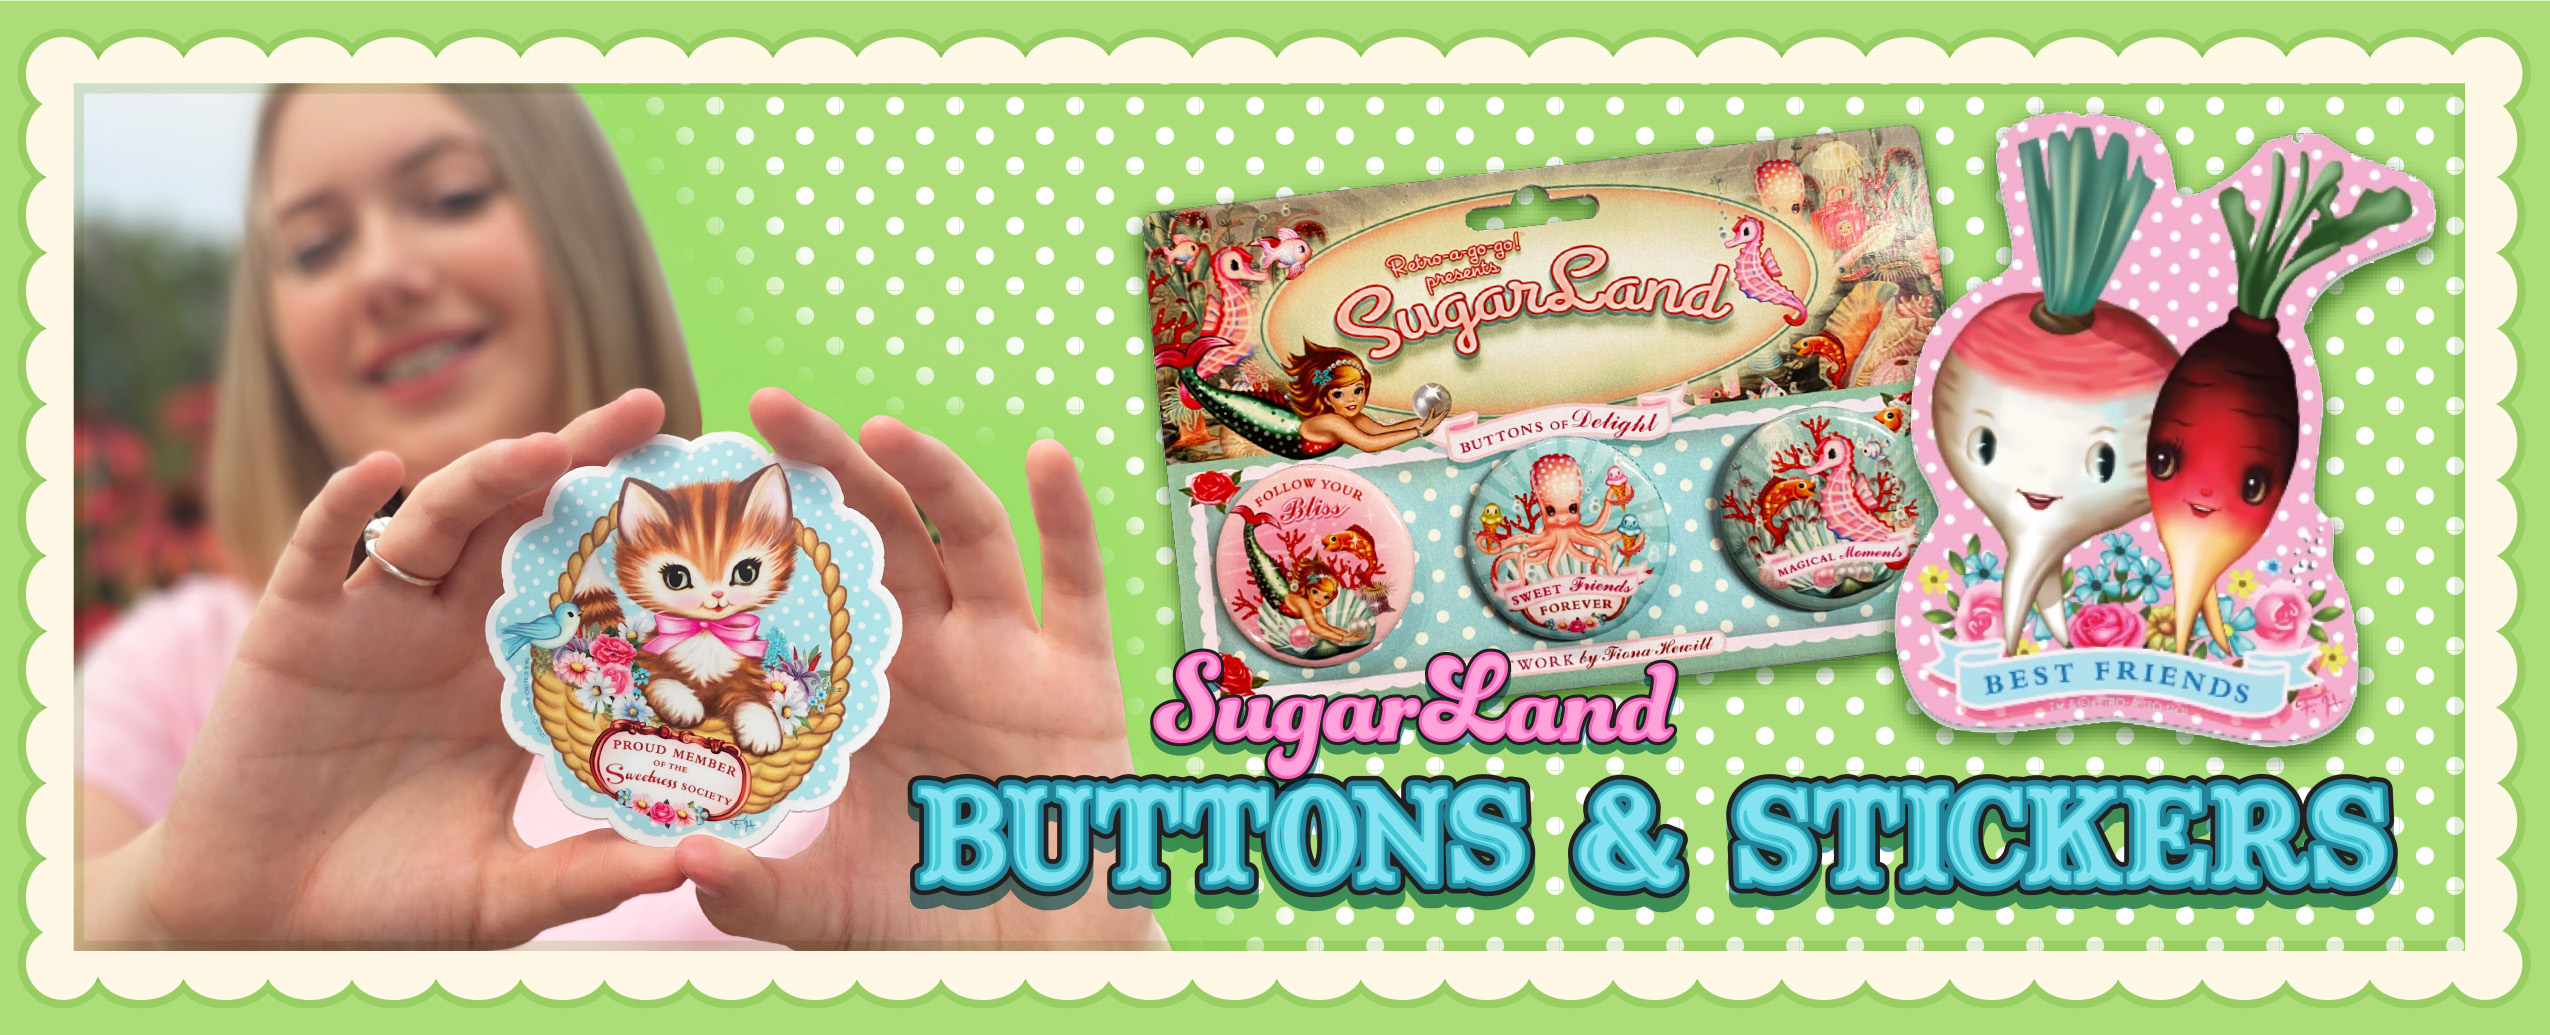 sugarland-catagory-buttons.stickers-rev.jpg